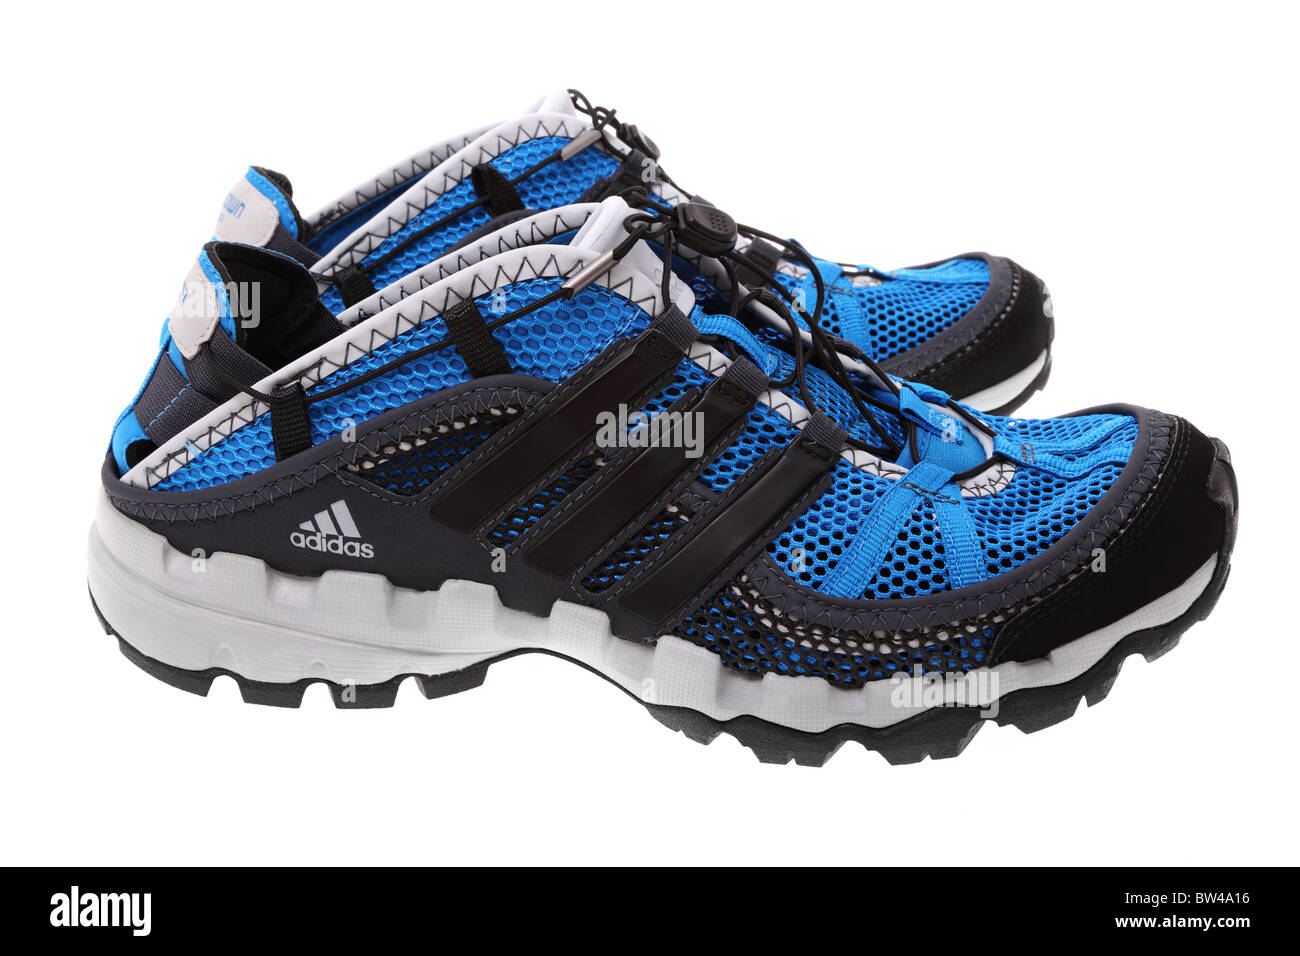 Adidas Hydroterra Shandal sport shoes isolated on a white background. Studio shot. - Stock Image